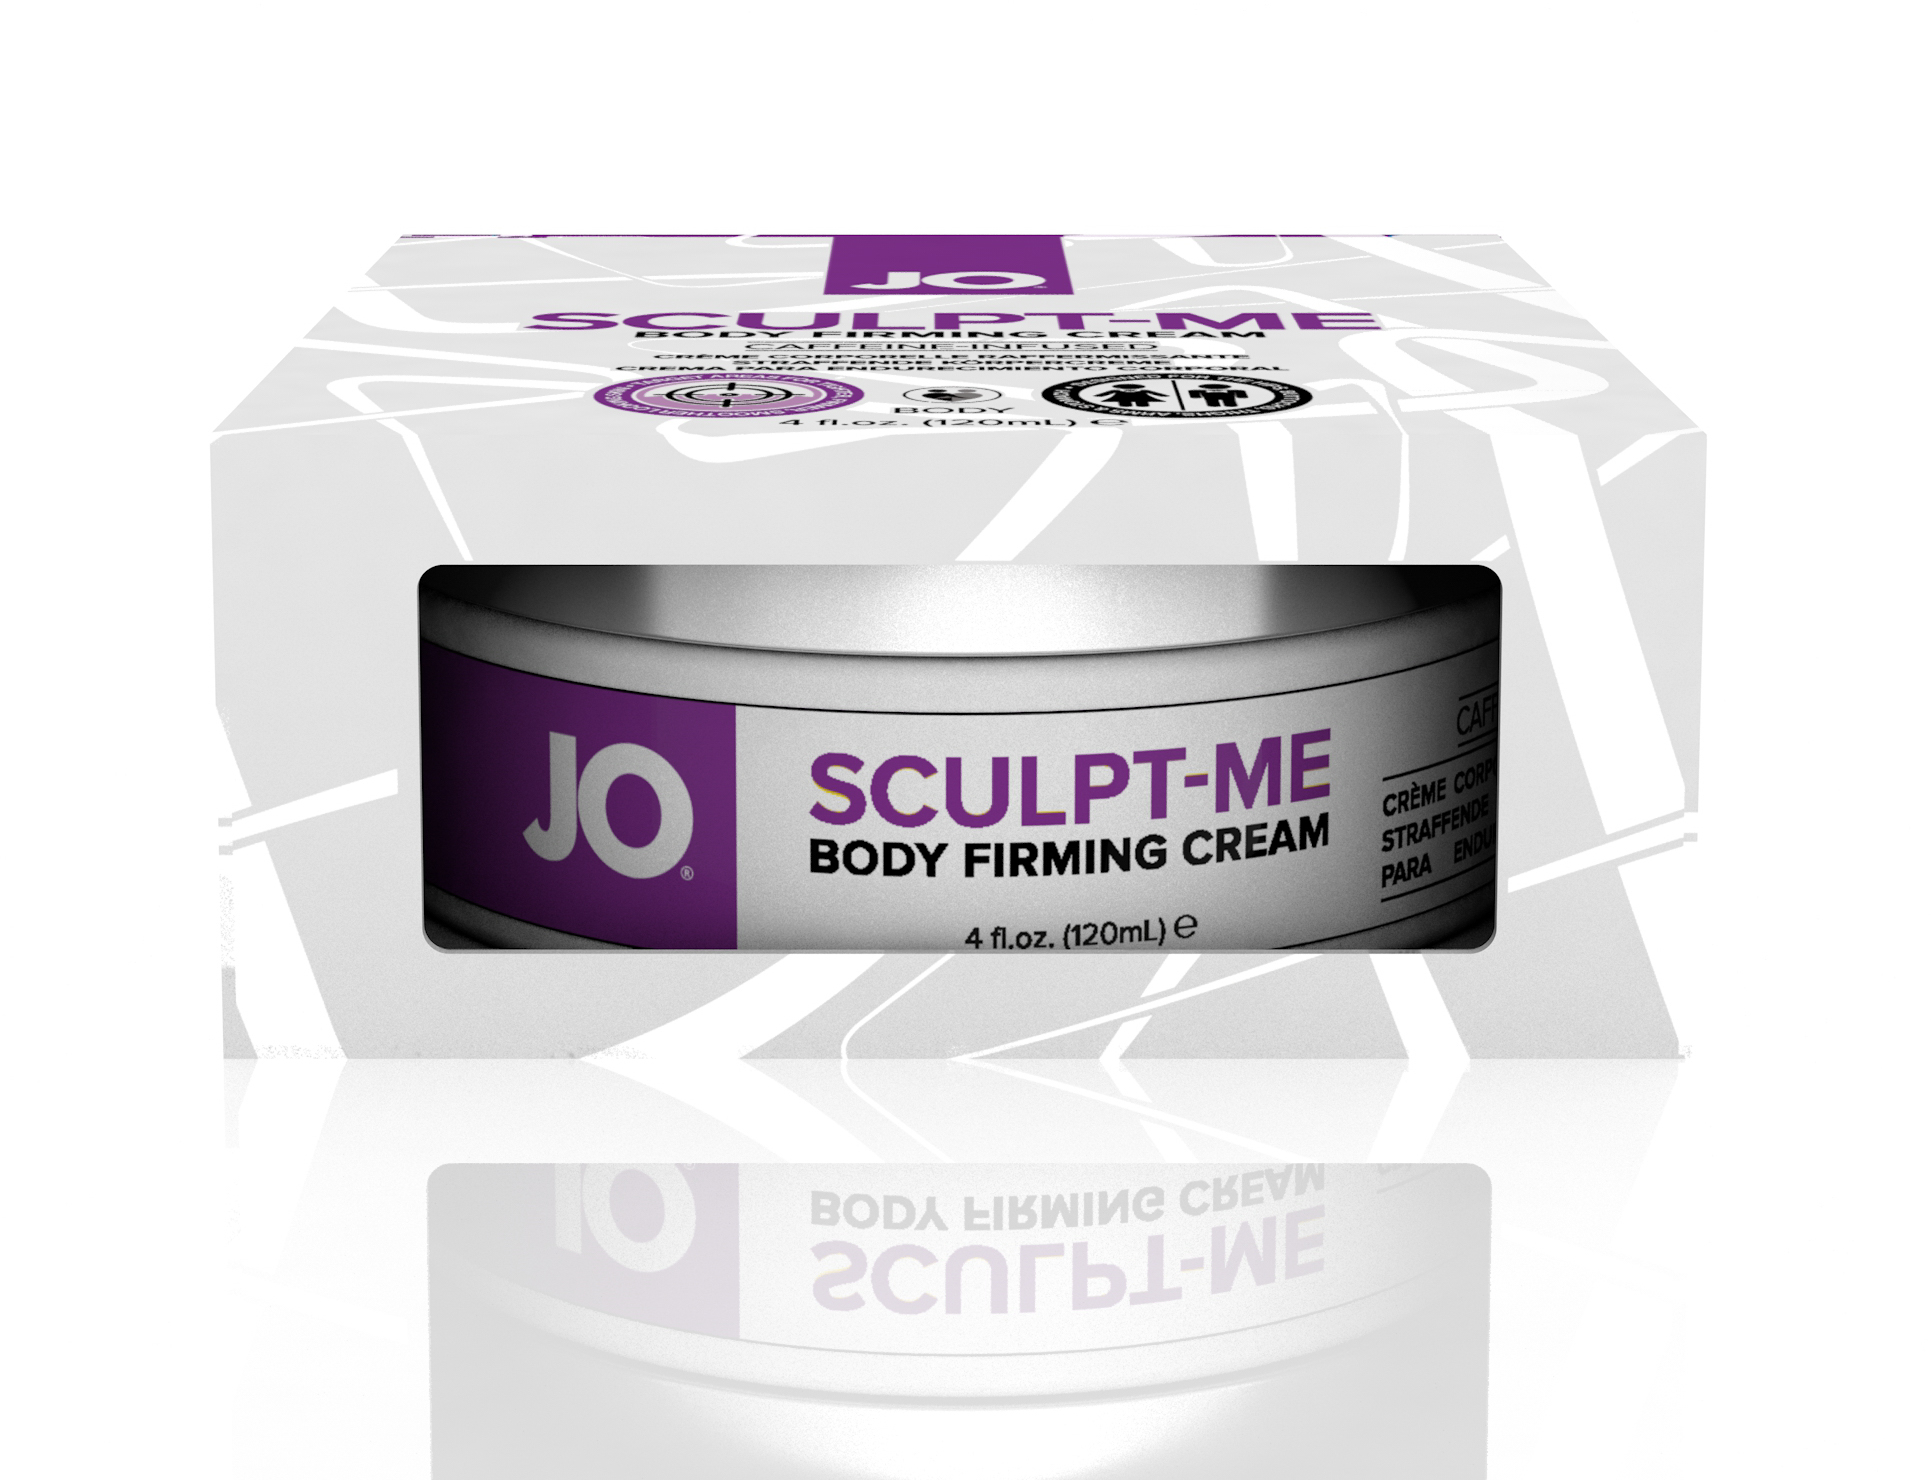 44072 - JO SCULPT ME - ANTI-CELLULITE BODY FIRMING CREAM - 4fl.oz120mL_01.jpg